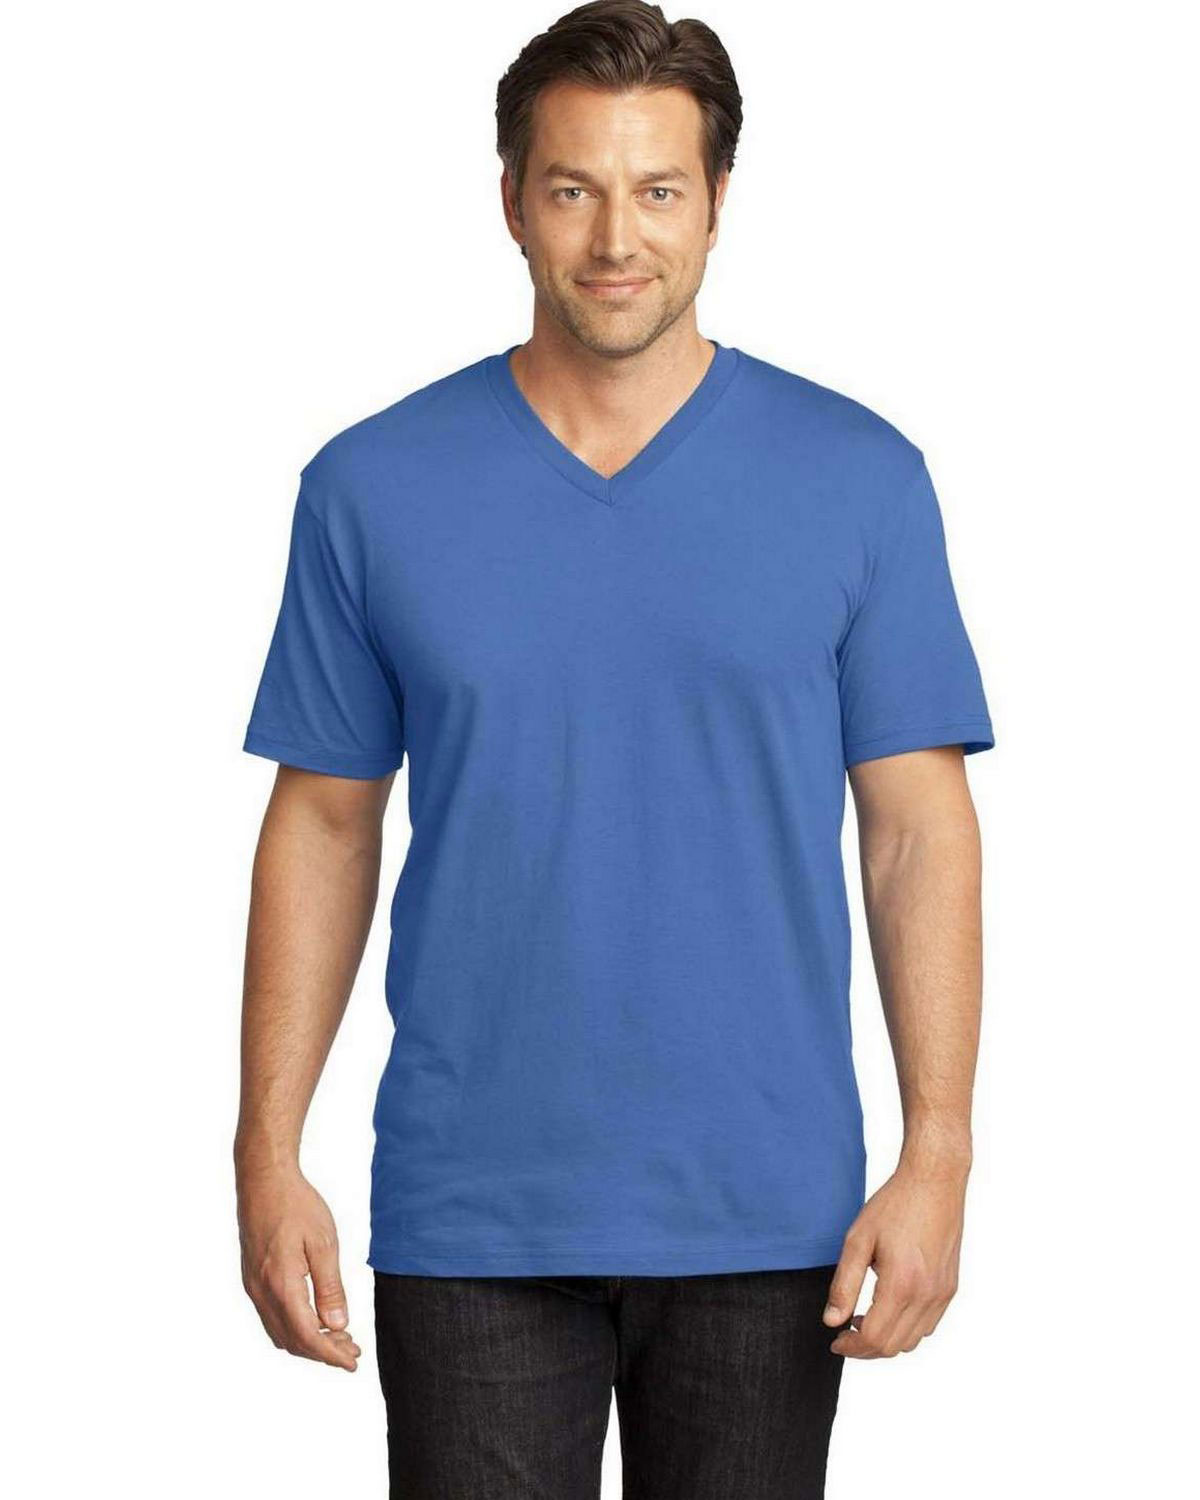 District DT1170 Perfect Weight V-Neck Tee